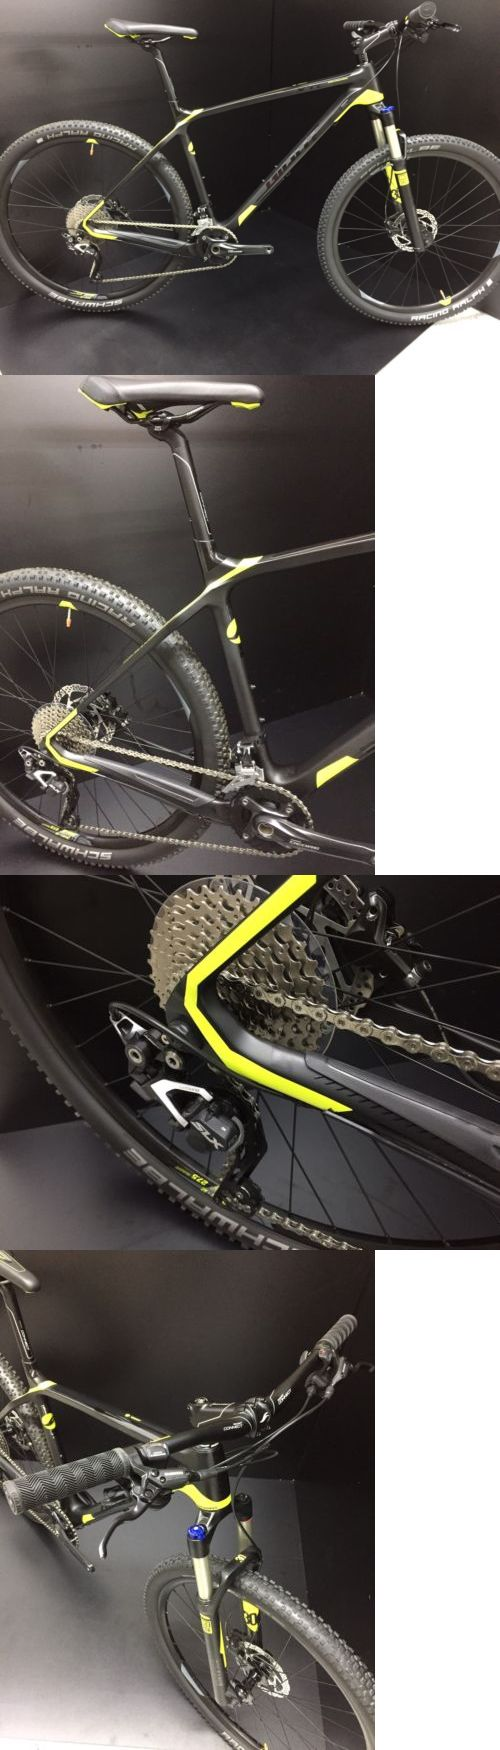 bicycles: Giant 2016 Xtc Advanced 27.5 3 Large *New* BUY IT NOW ONLY: $1300.0